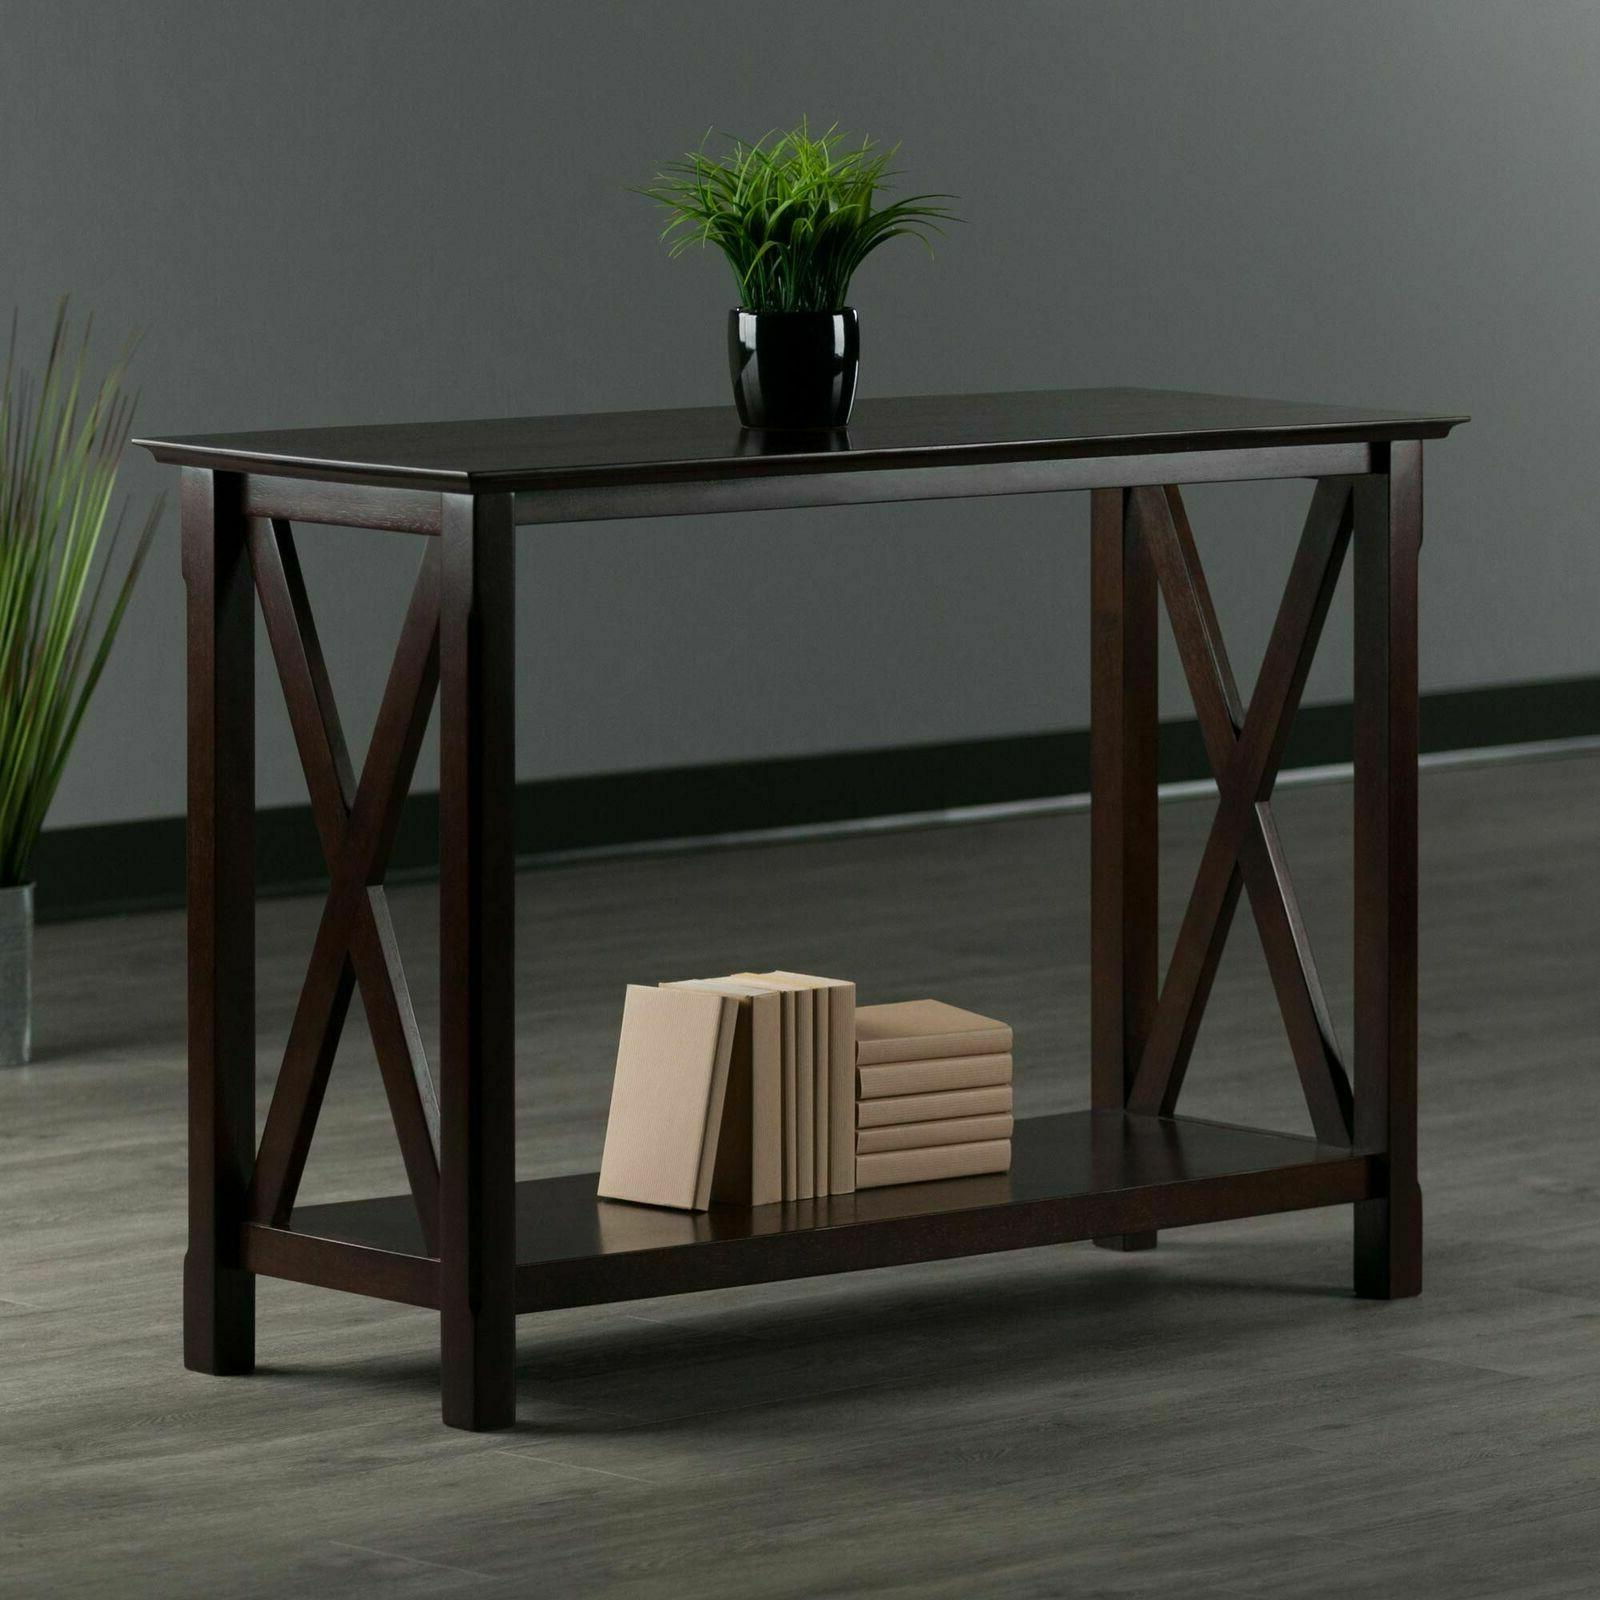 Table Winsome Xola Cappuccino Mission/Shaker Console New Modern